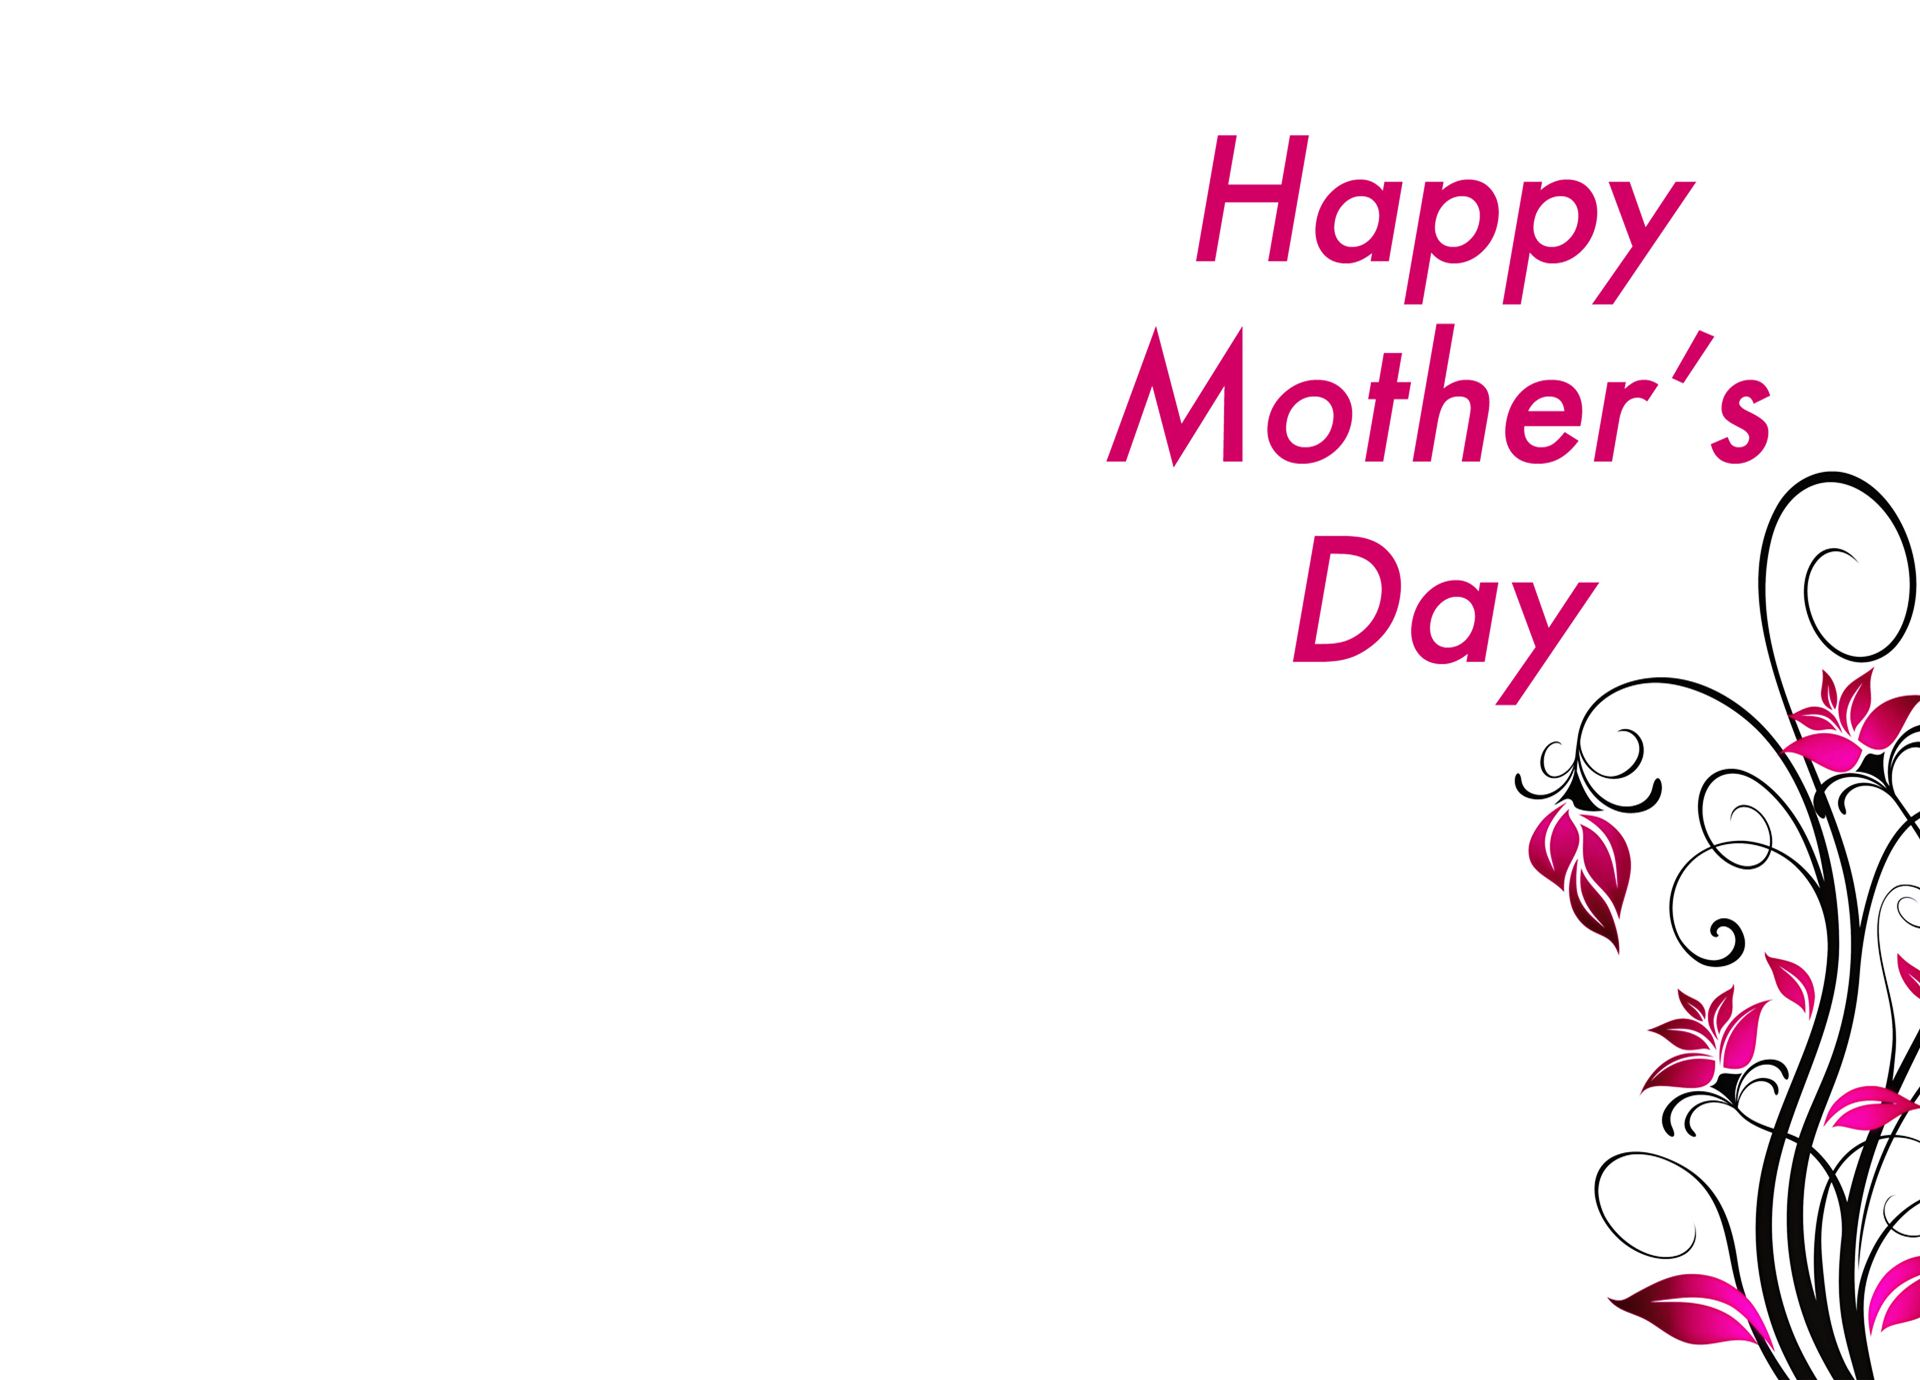 Mothers Day Cards Templates Pictures to pin on Pinterest